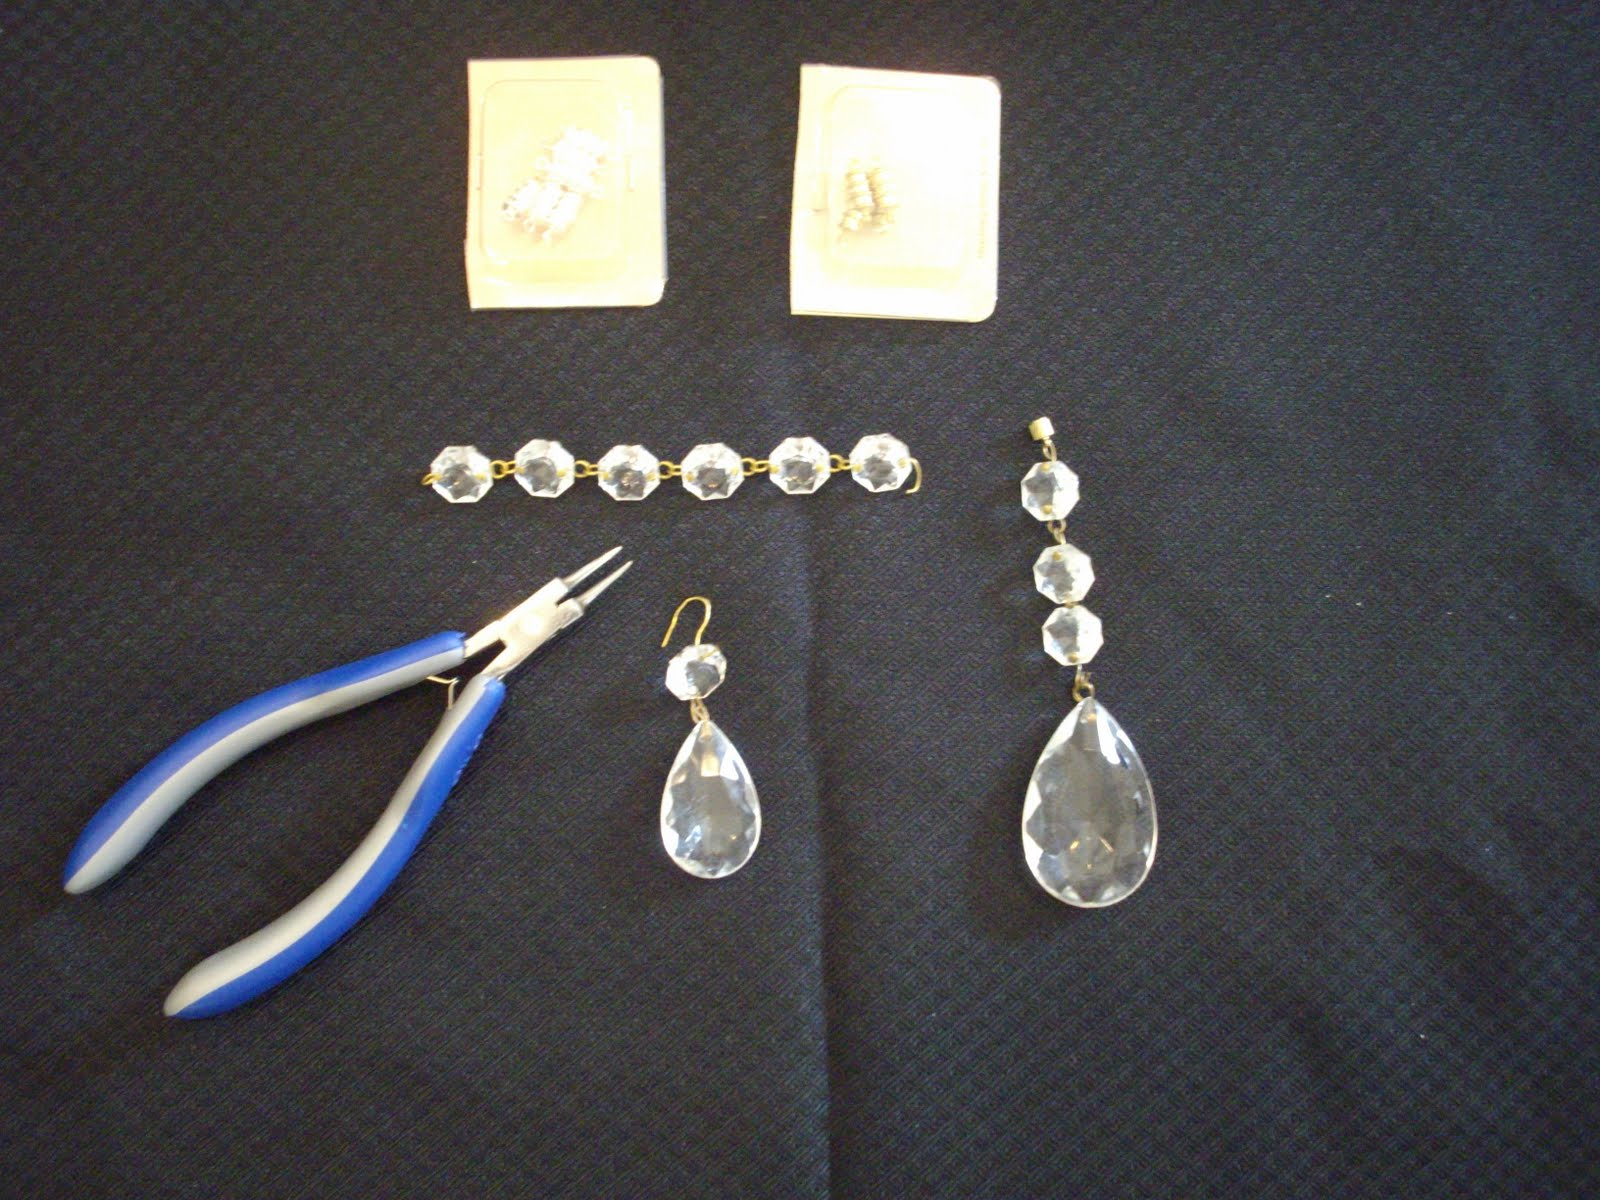 Anythingology bling for your chandeliers add the round crystals to the pear shaped ones and add a magnet to the end you will need the jewelry tool to make the loops for the magnet and attaching aloadofball Choice Image